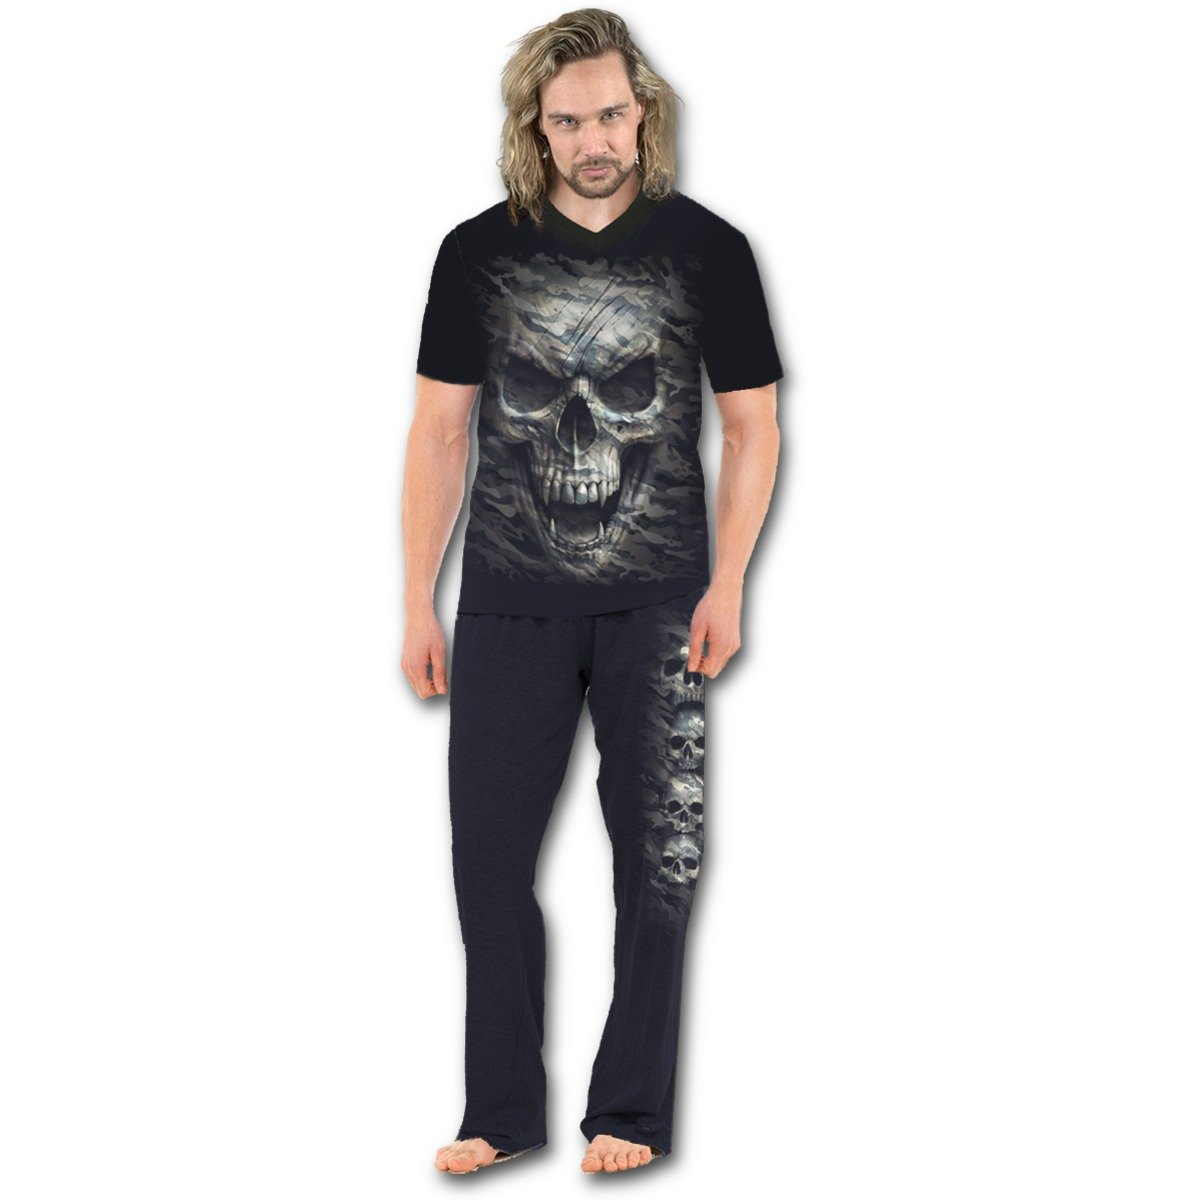 Spiral - CAMO-SKULL - 4pc Mens Gothic Pyjama Set Spiral Direct Ltd T141M631